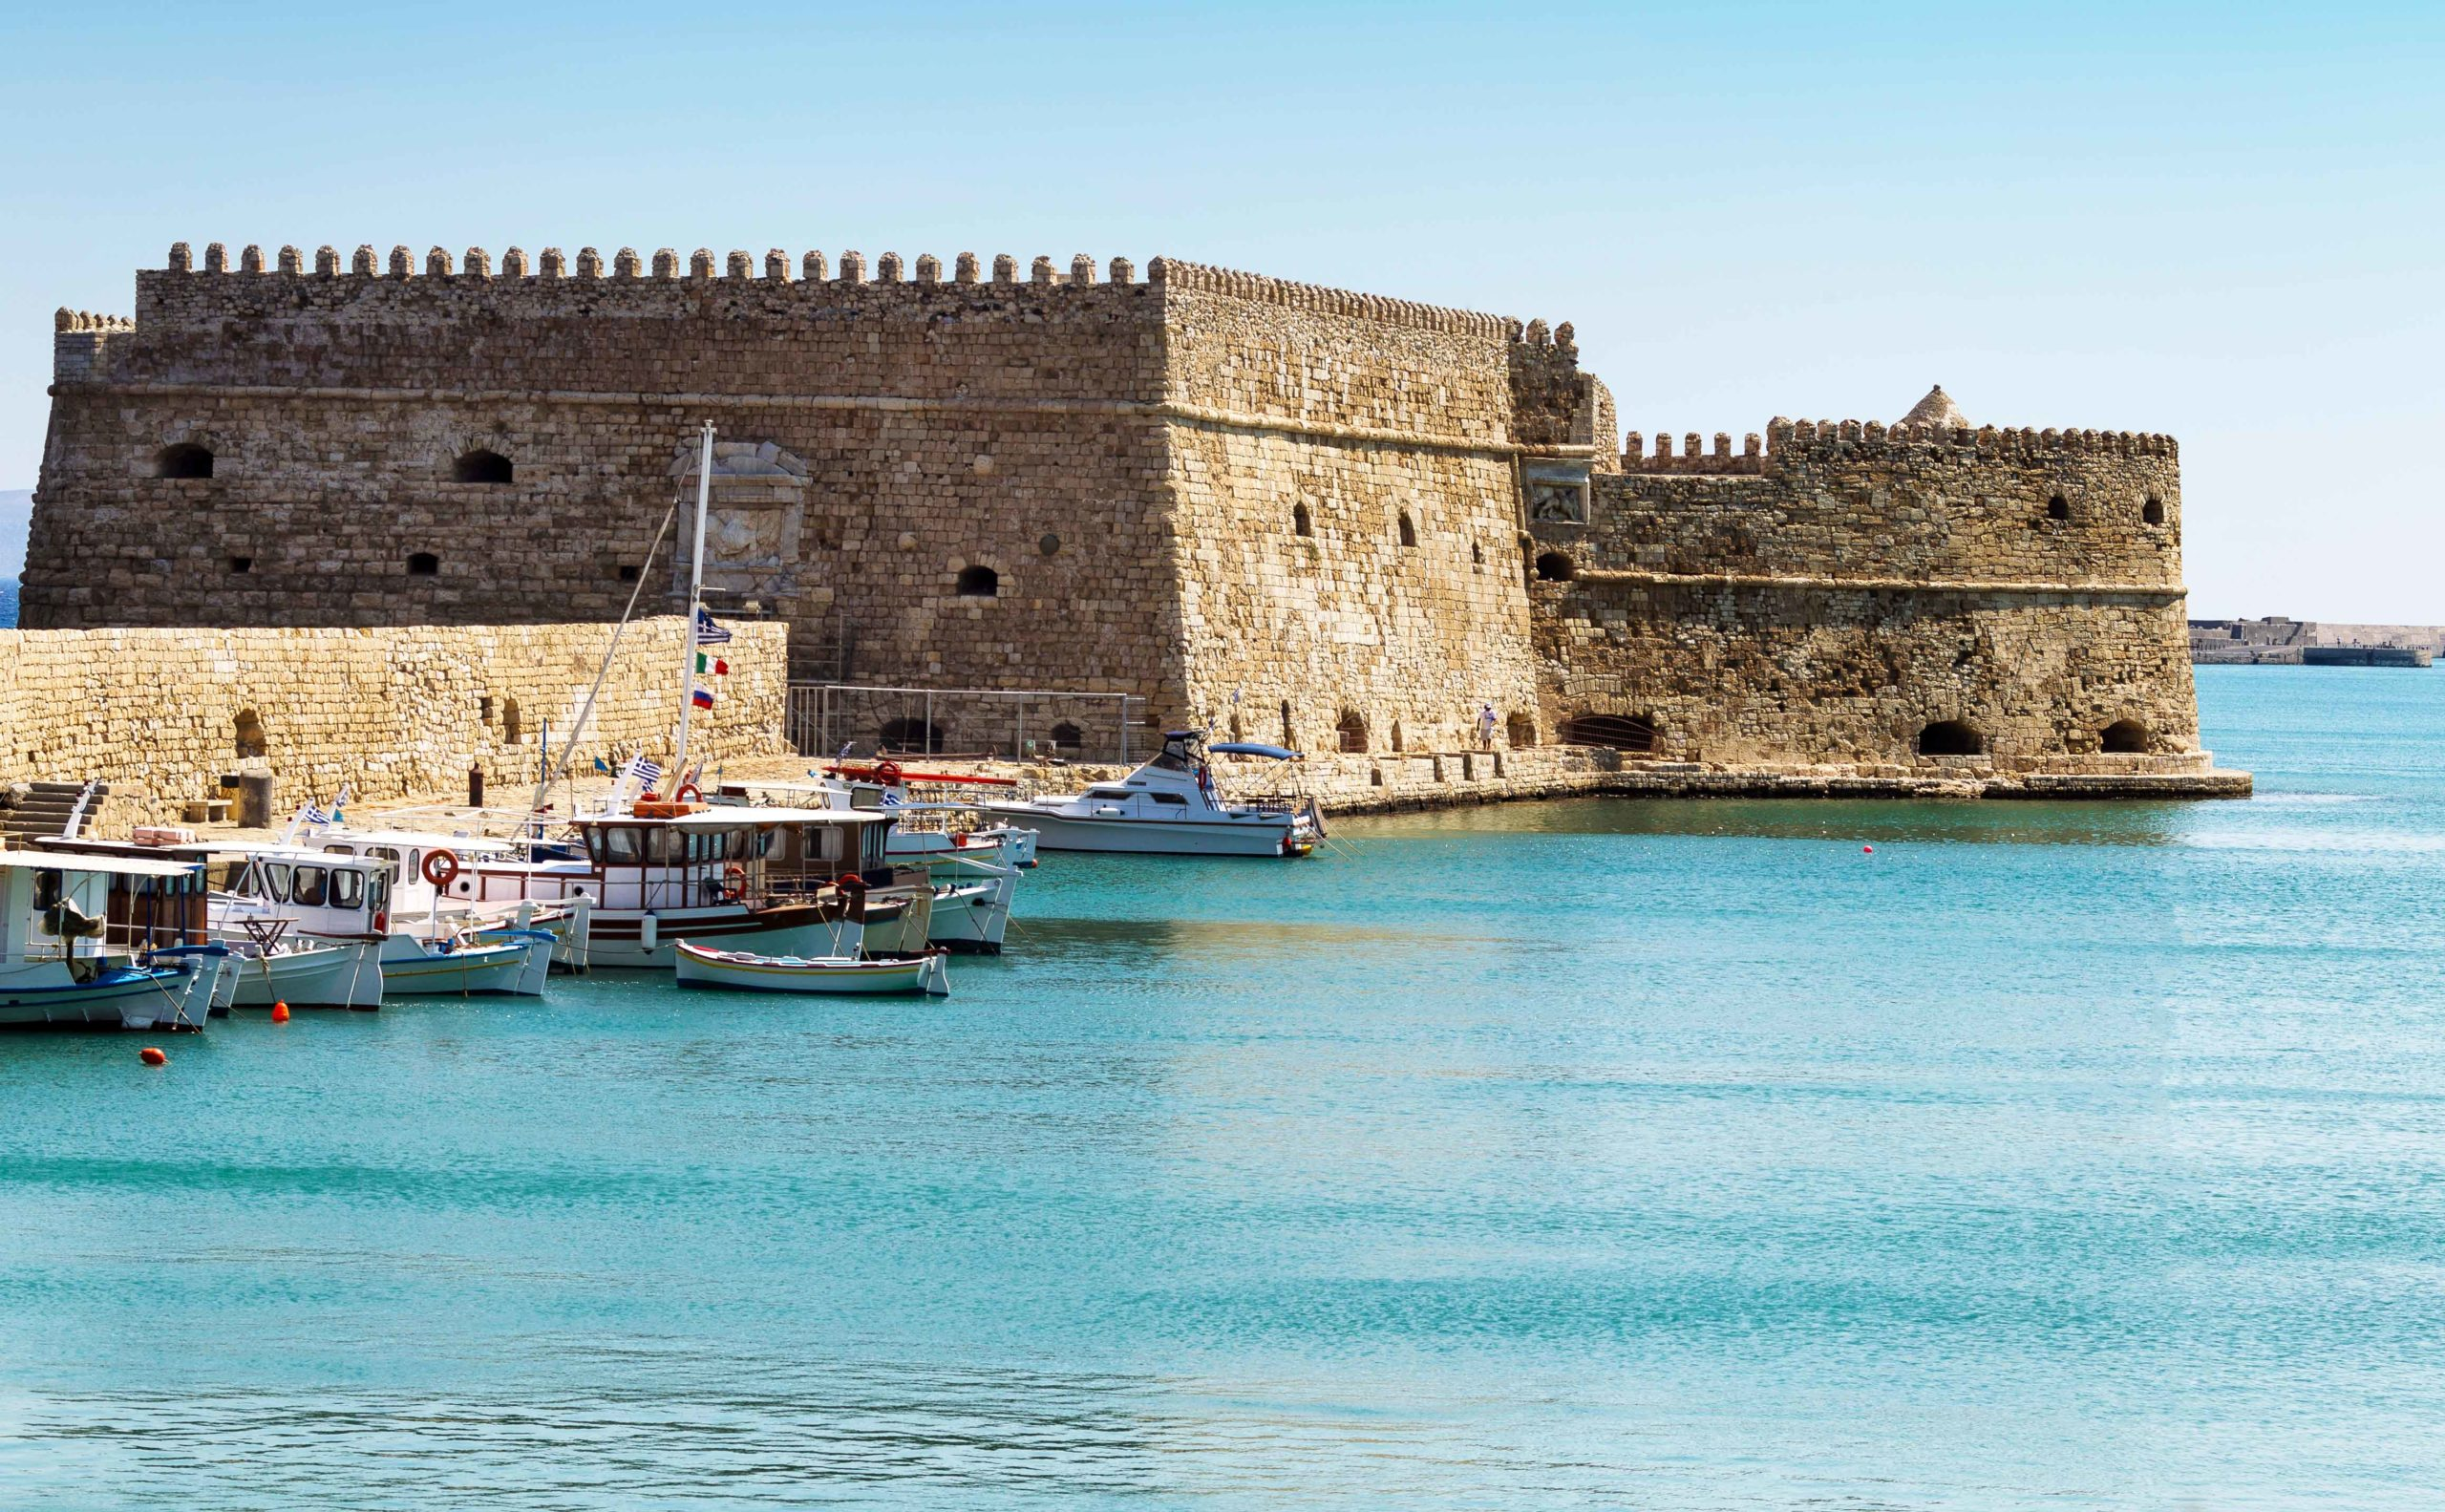 Canva---Heraklion